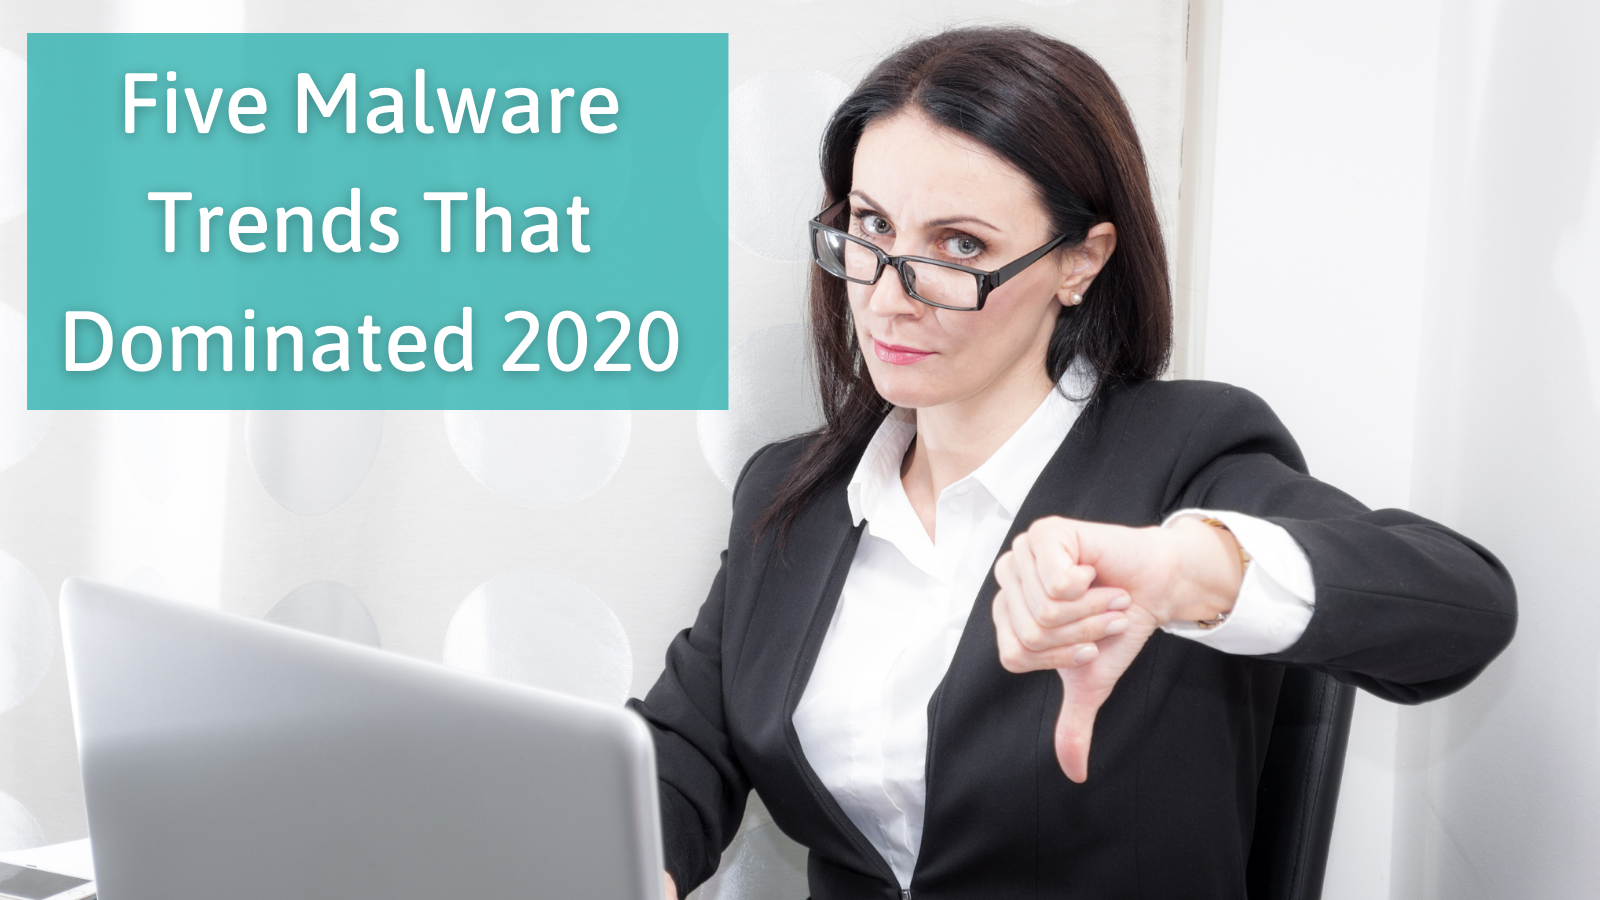 Five Malware Trends That Dominated 2020 (And Will Still Be Here in 2021)